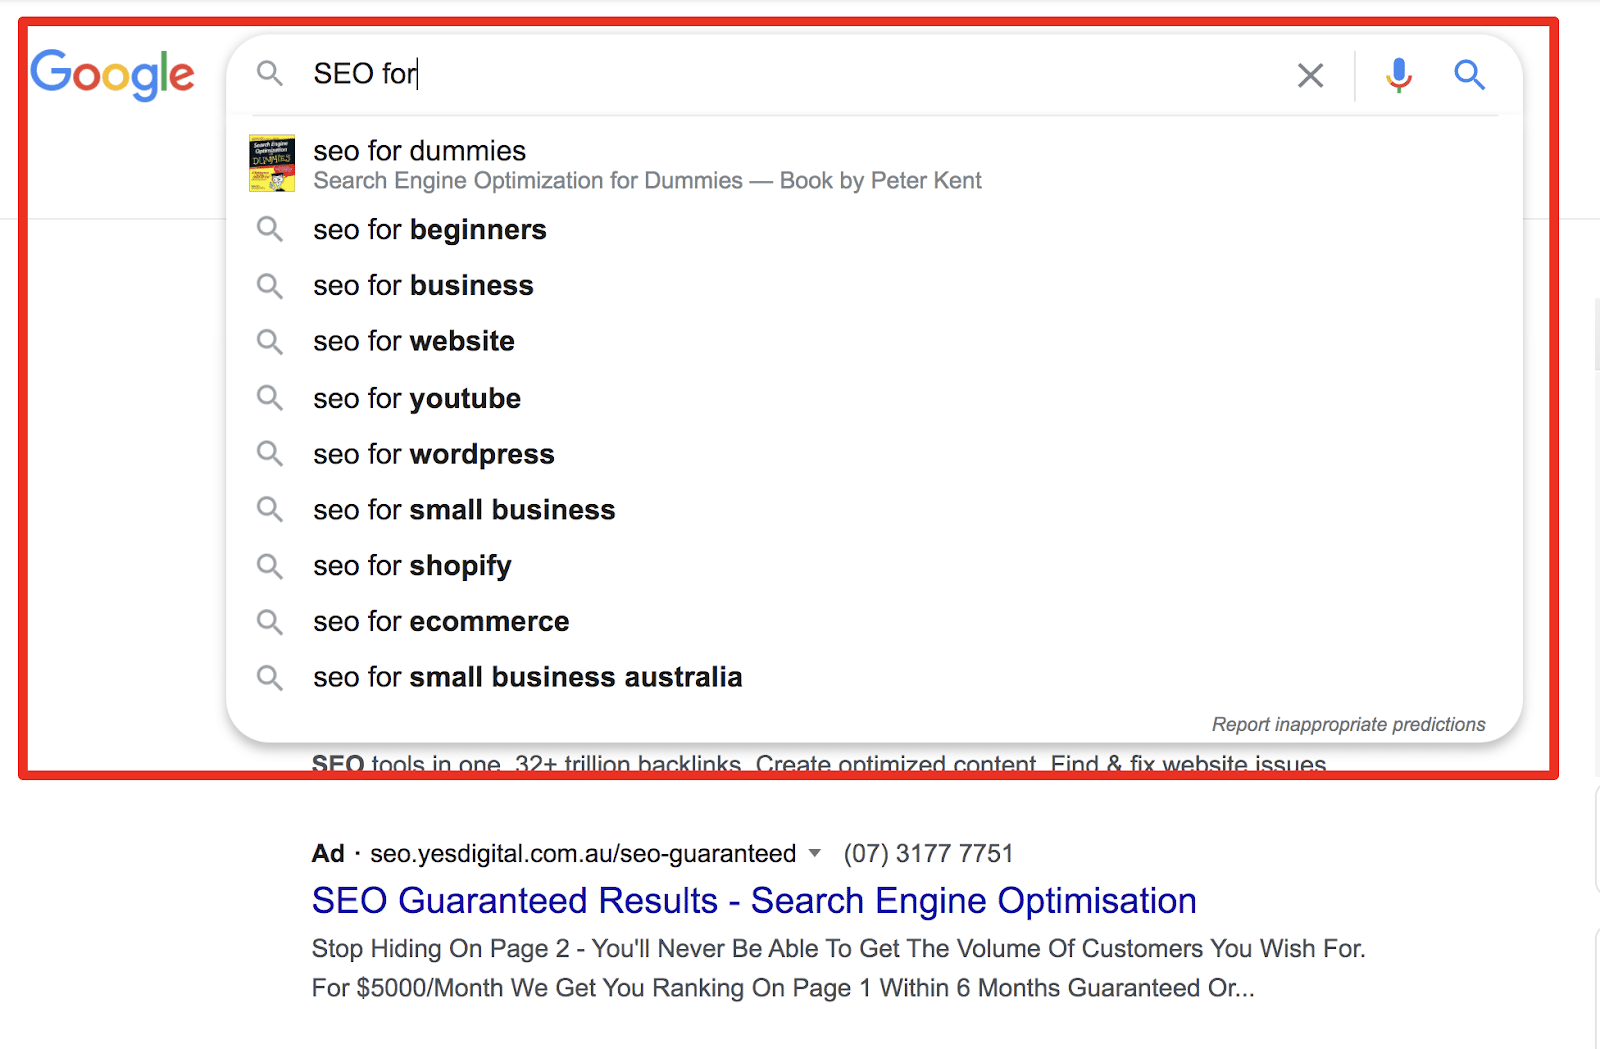 using google's autocomplete when typing seo for into the search bar